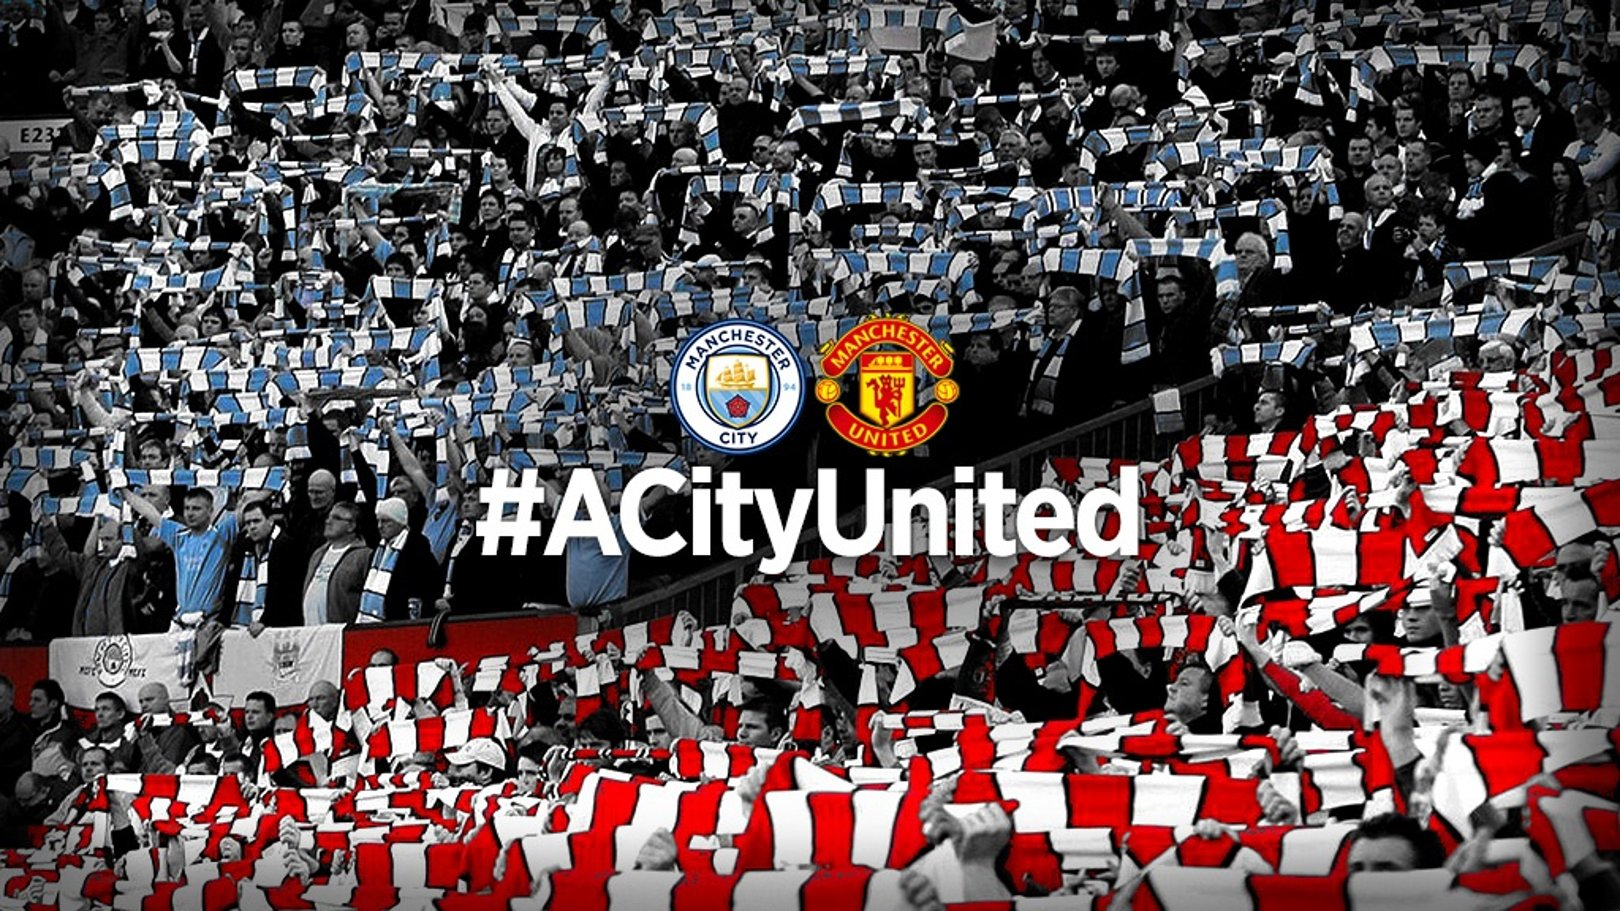 #ACityUnited - Manchester clubs come together to donate £100,000 to local food banks